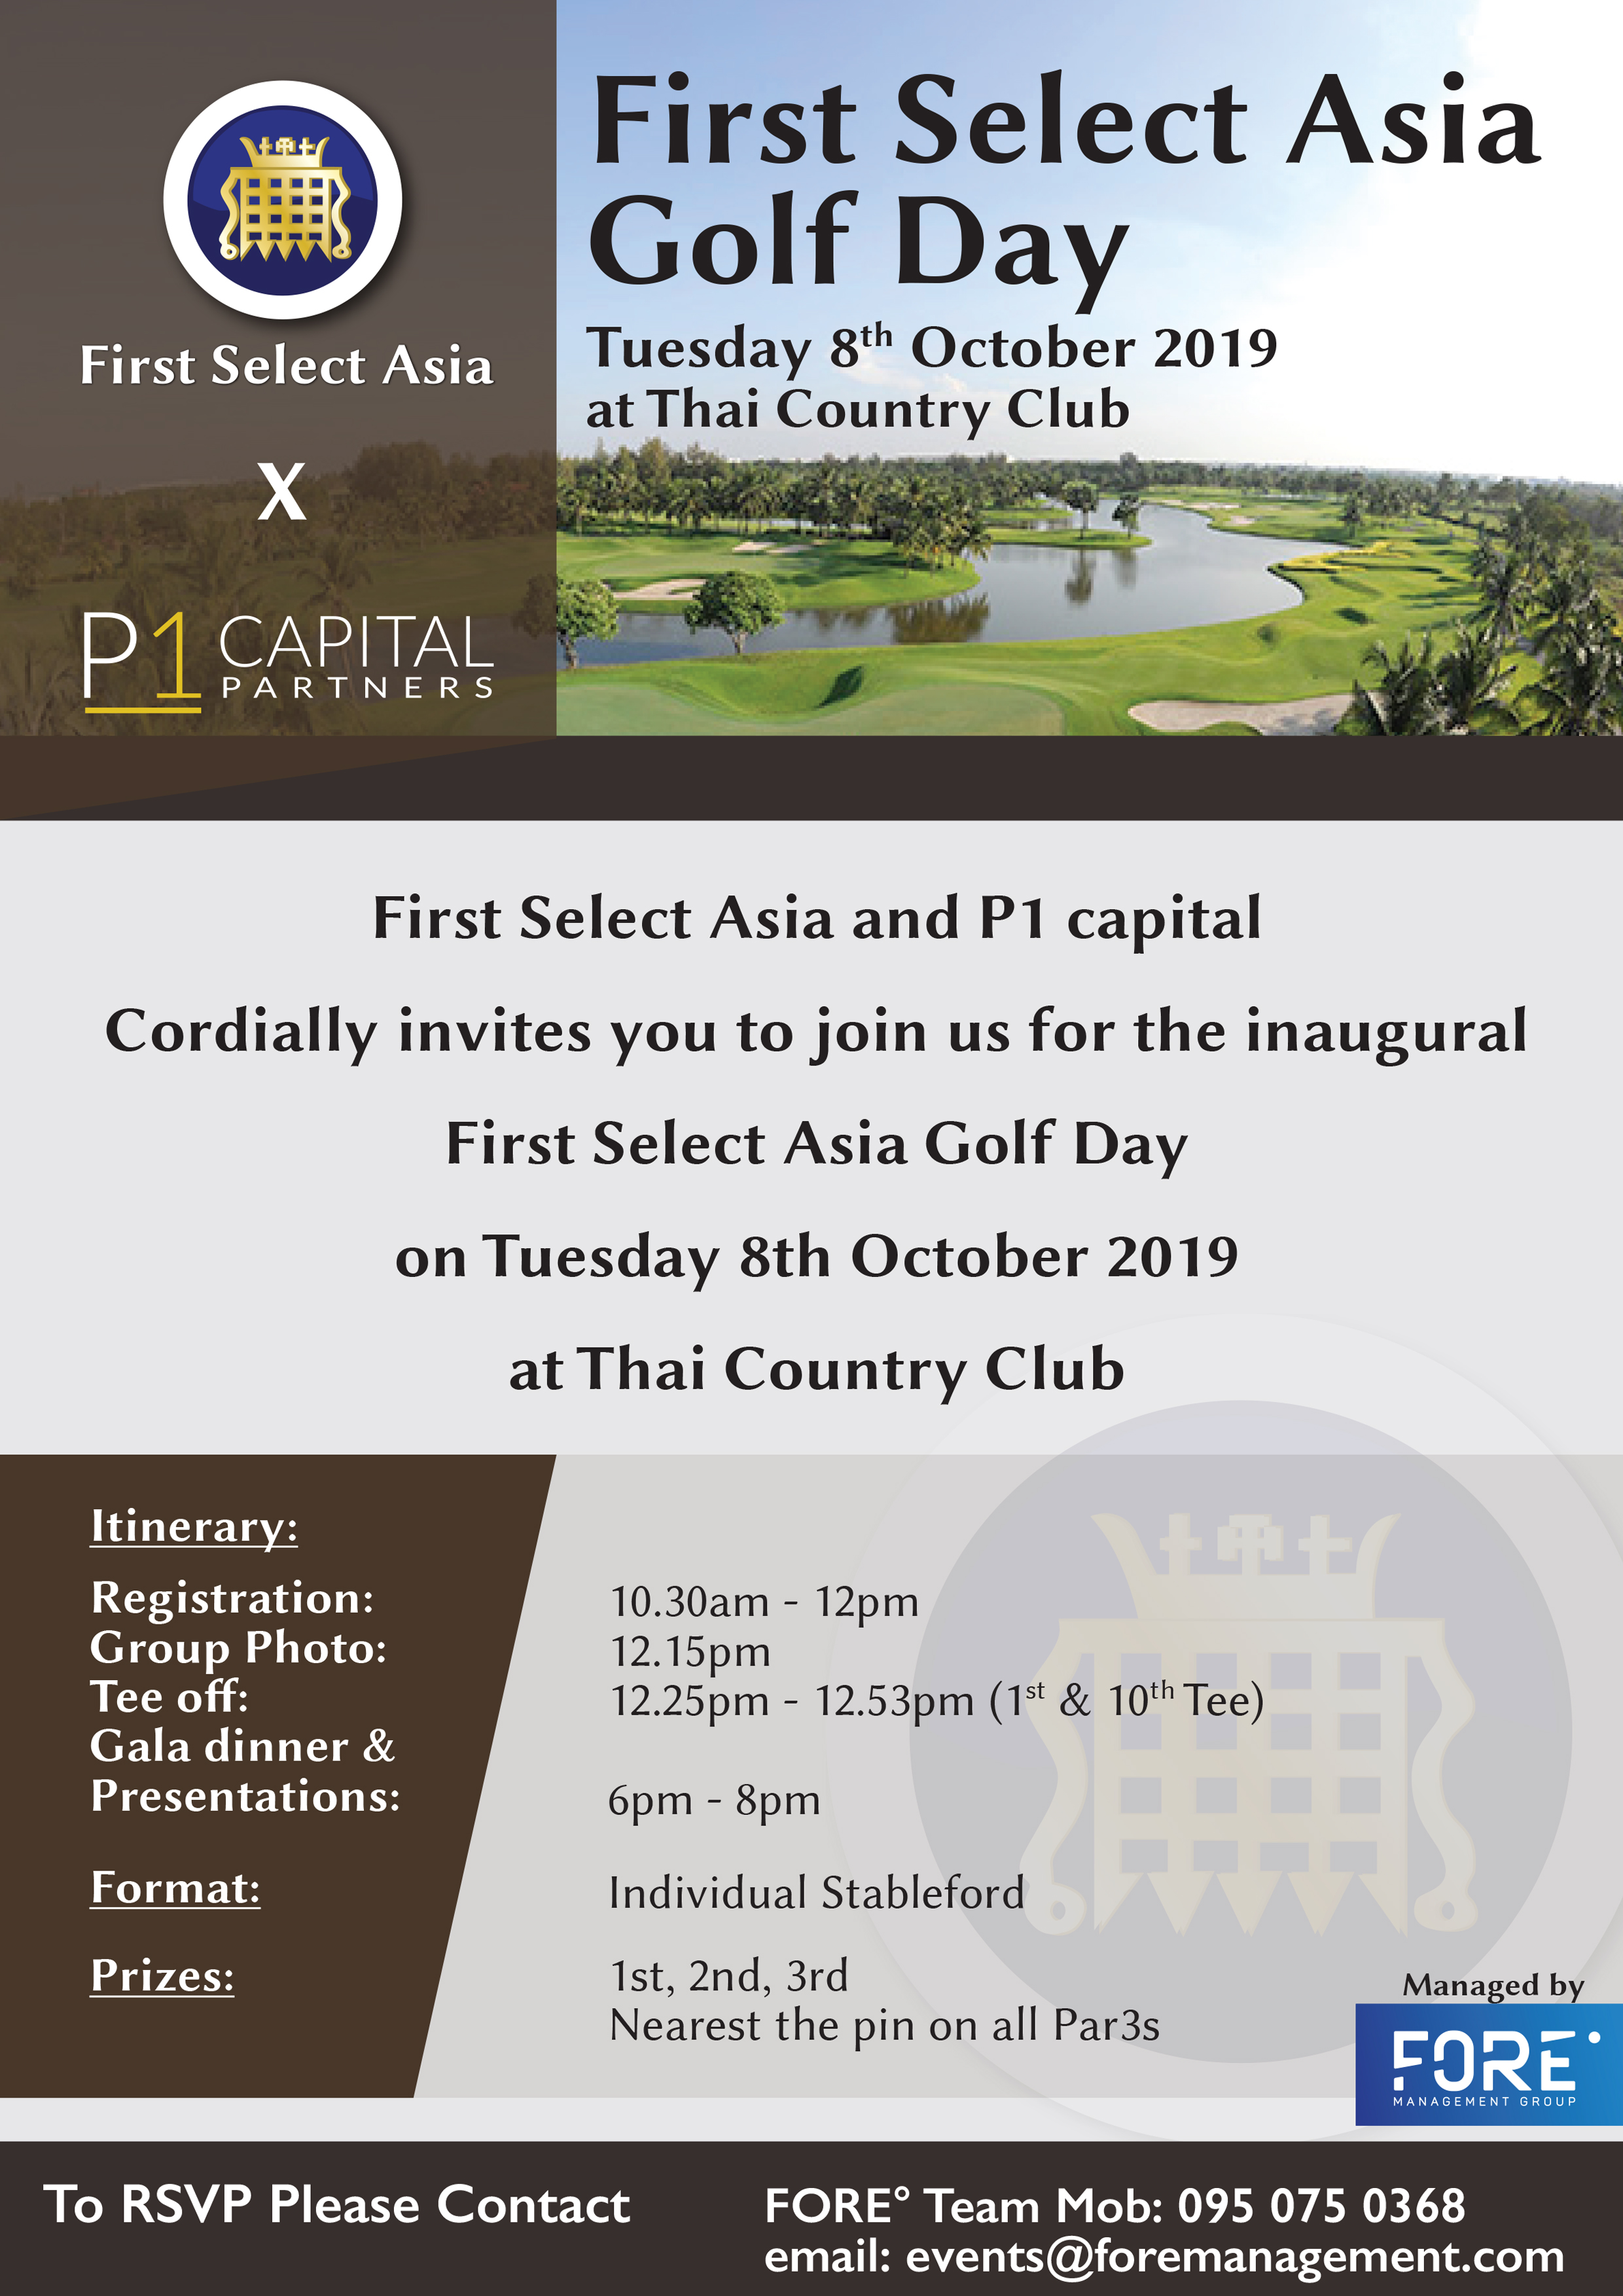 First Select Asia and P1 capital Golf Day Flyer.jpg